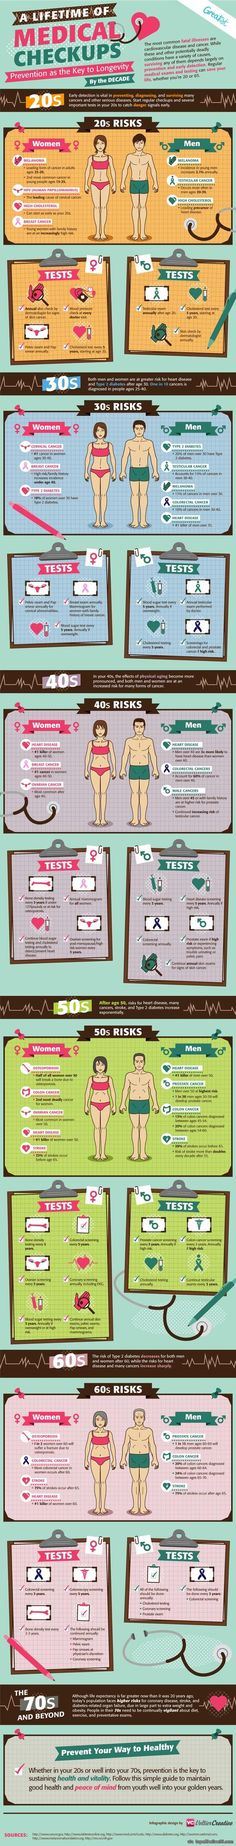 A Lifetime of Medical Checkups [Infographic] | Greatist via topoftheline99.com